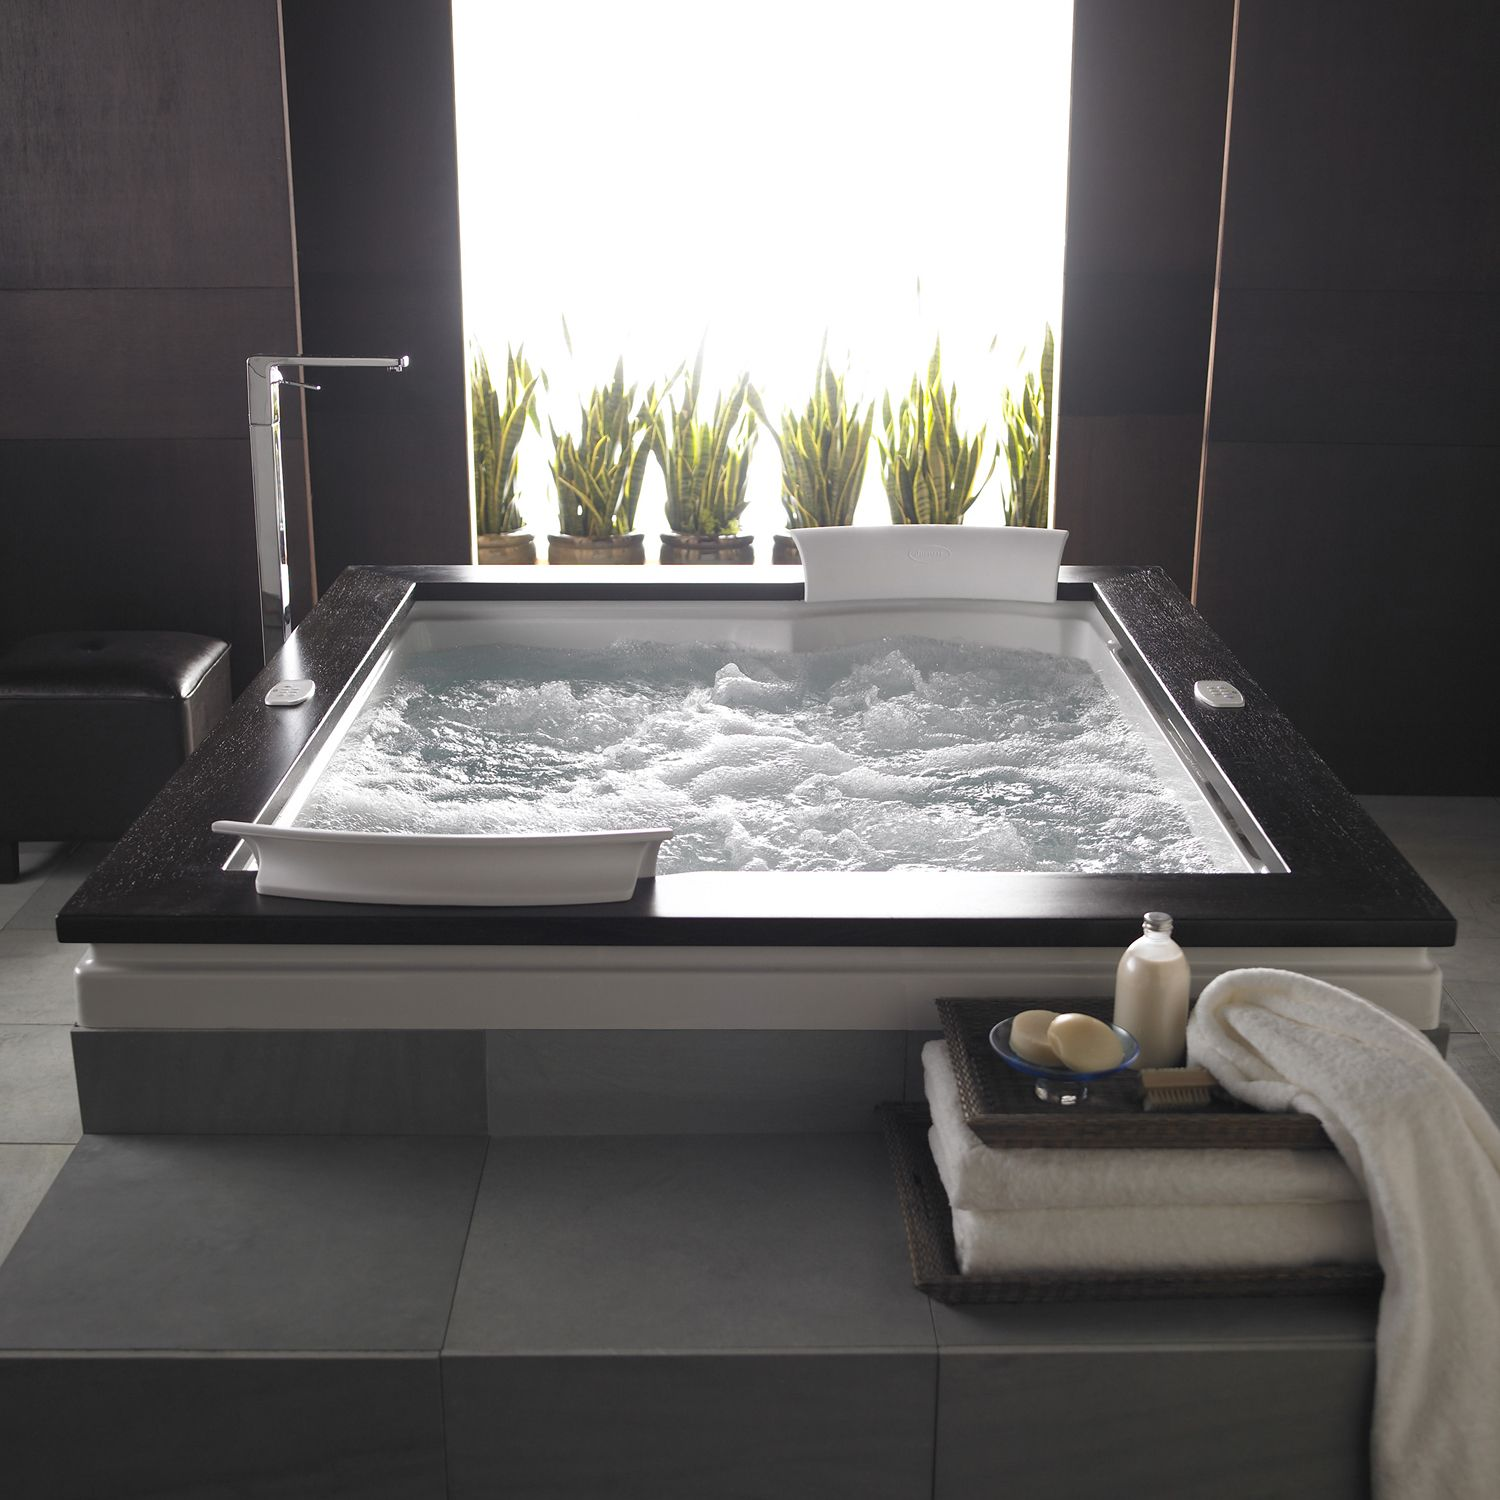 Modern elegance a tub for two | Bathroom | Pinterest | Tubs, Modern ...